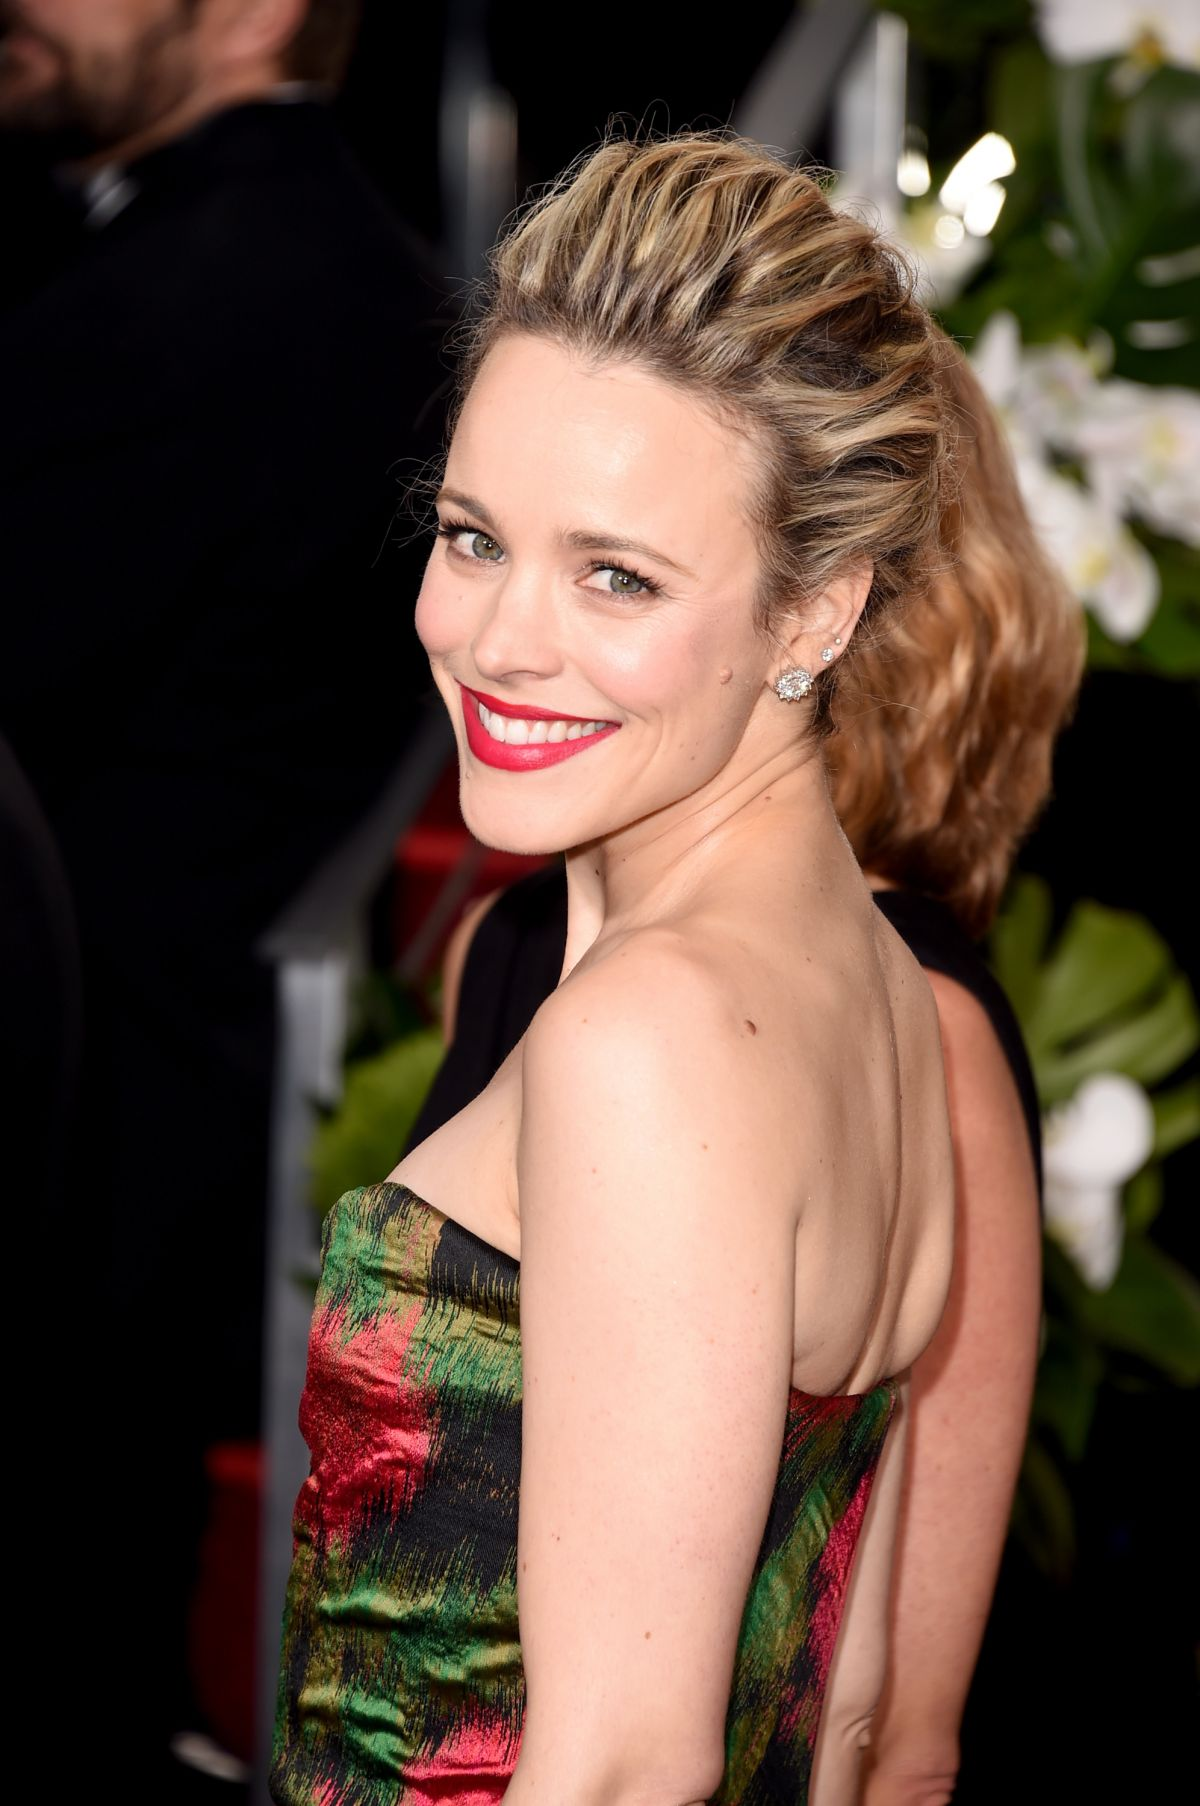 RACHEL MCADAMS at 73rd Annual Golden Globe Awards in ... Rachel Mcadams